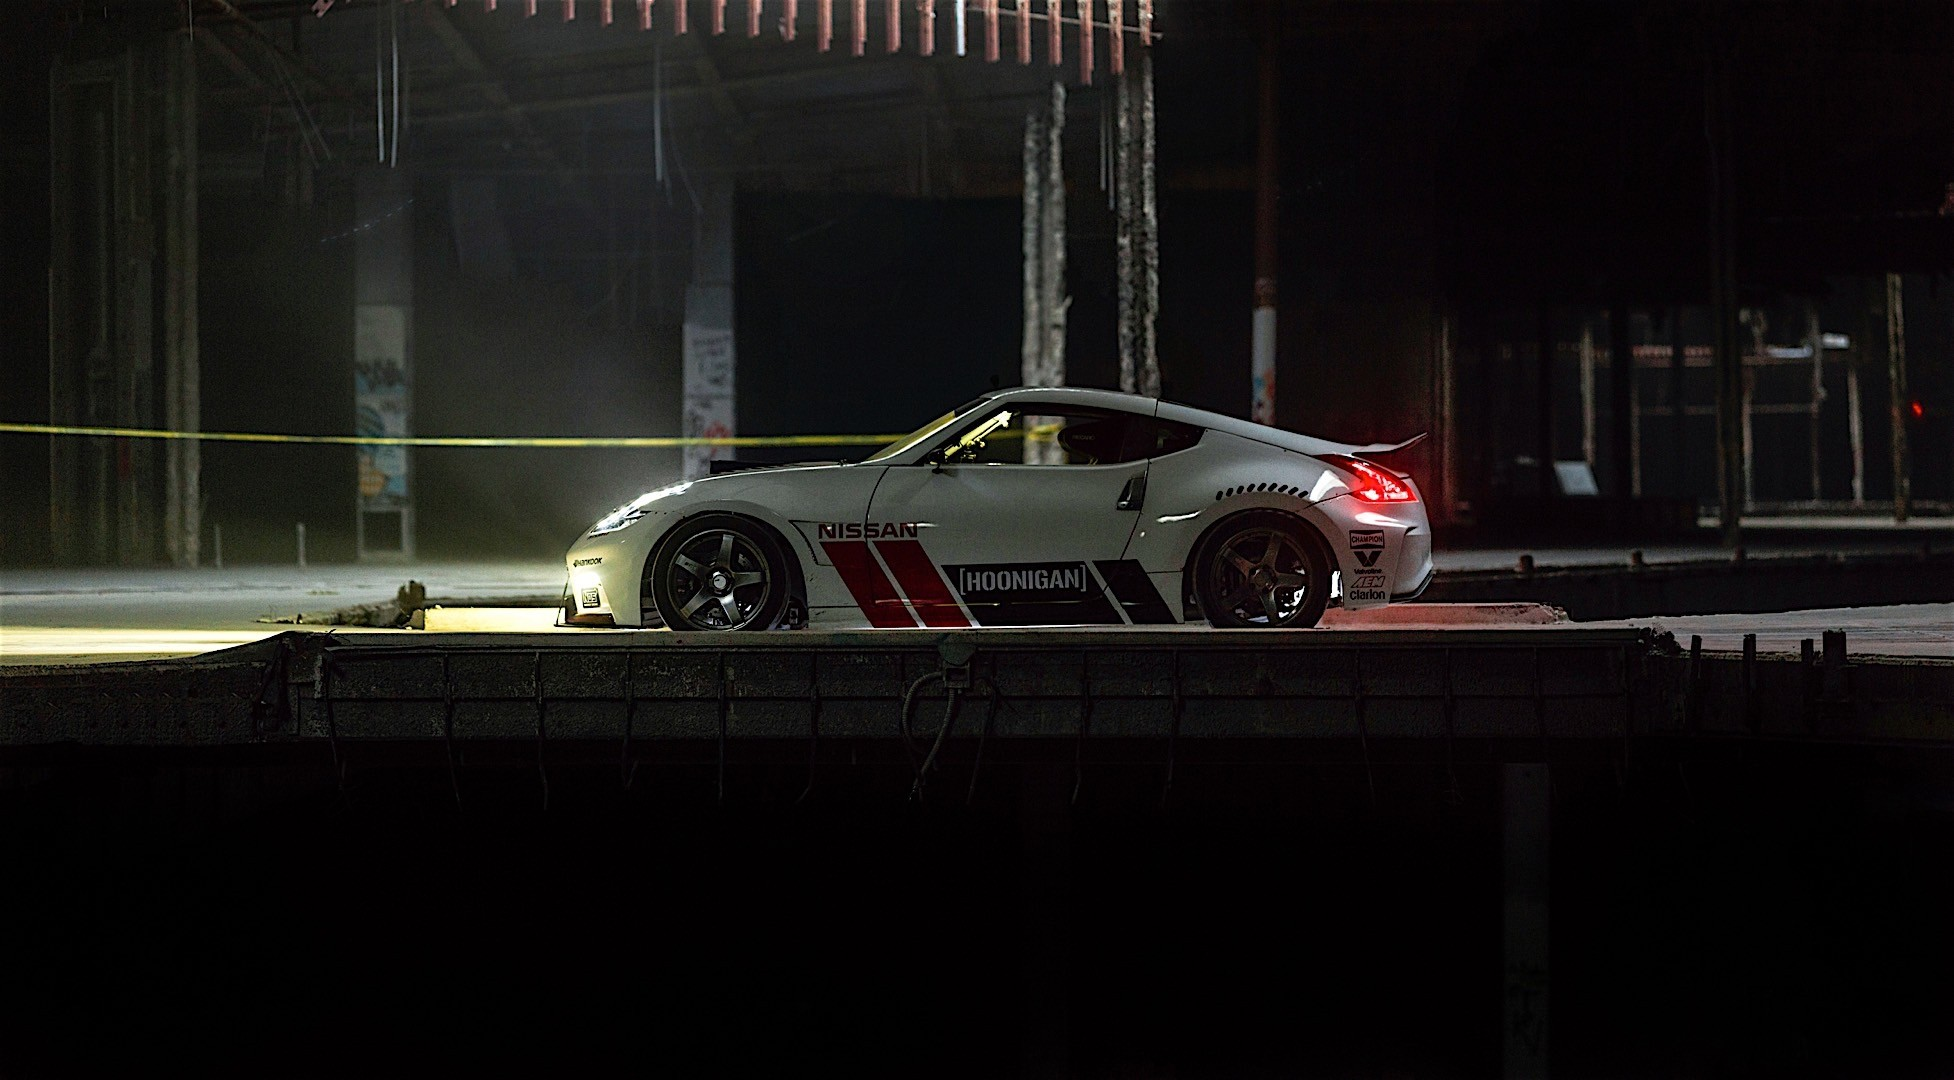 Hoonigan Escort >> Nissan and Hoonigan's Black Friday Has Two 1,000 HP Cars and an Abandoned Mall - 360 Video ...